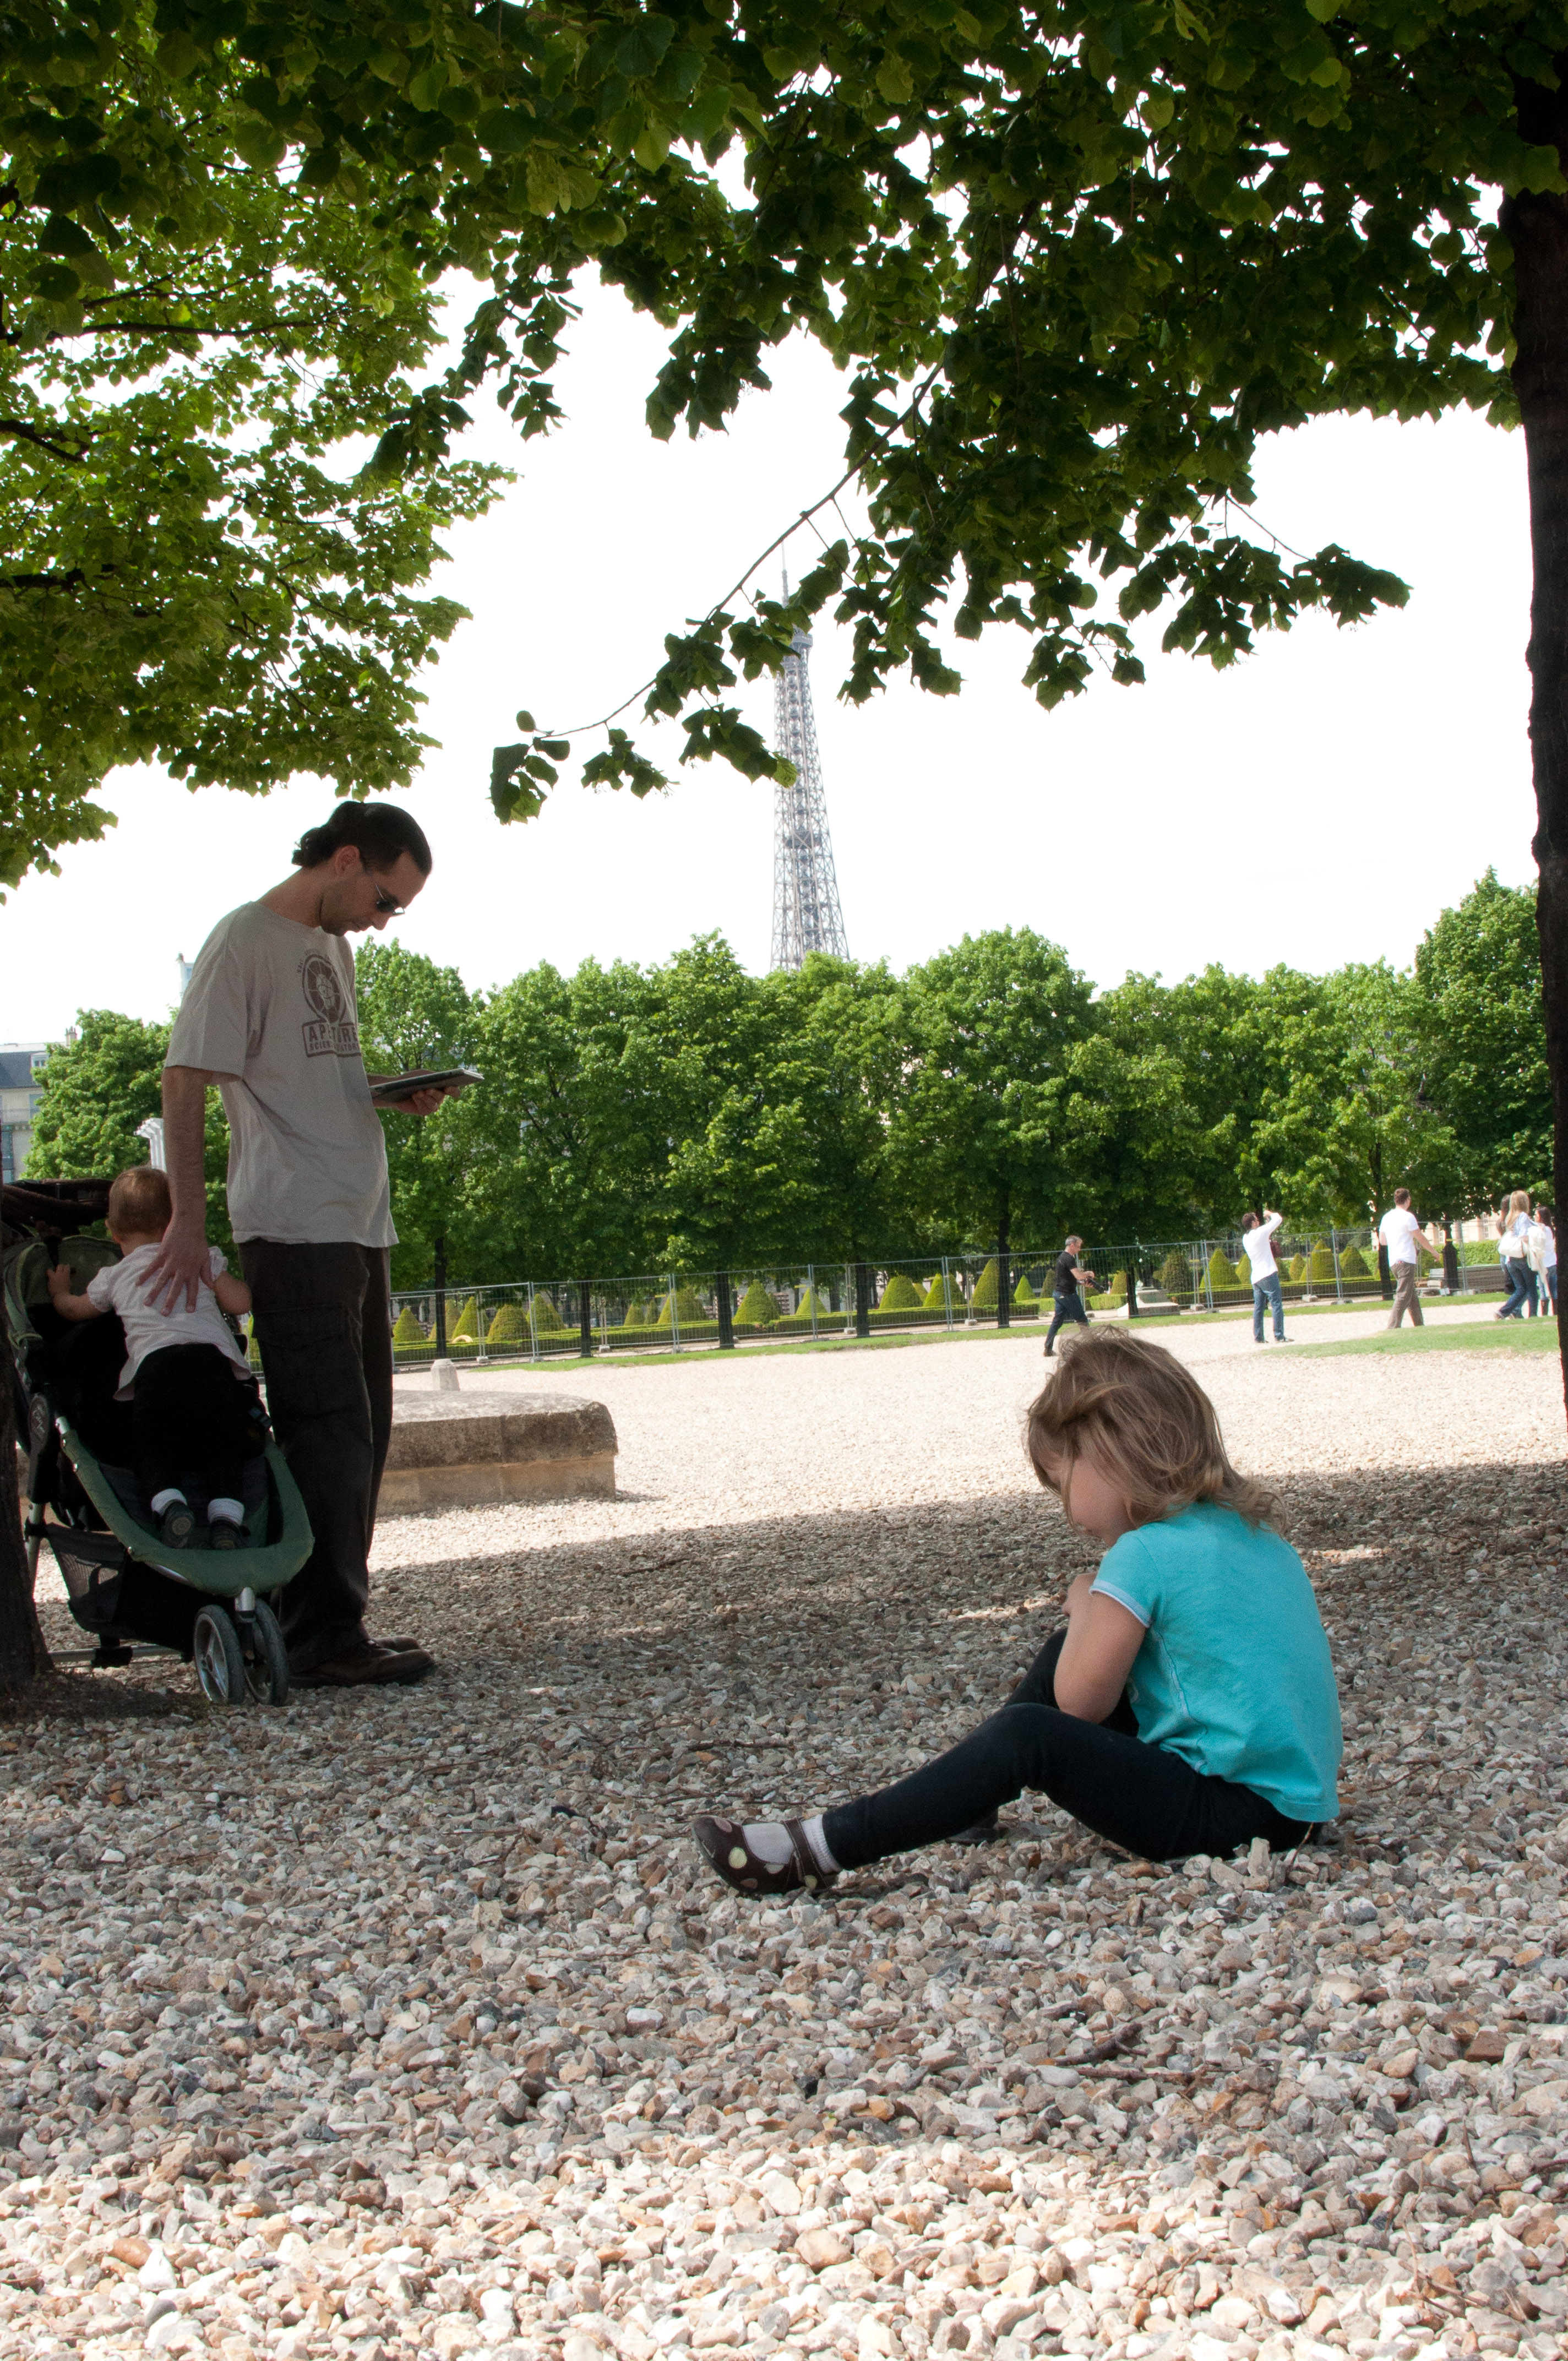 Celia, Jordi and Josie in the shade of Invalides, Tower in the background